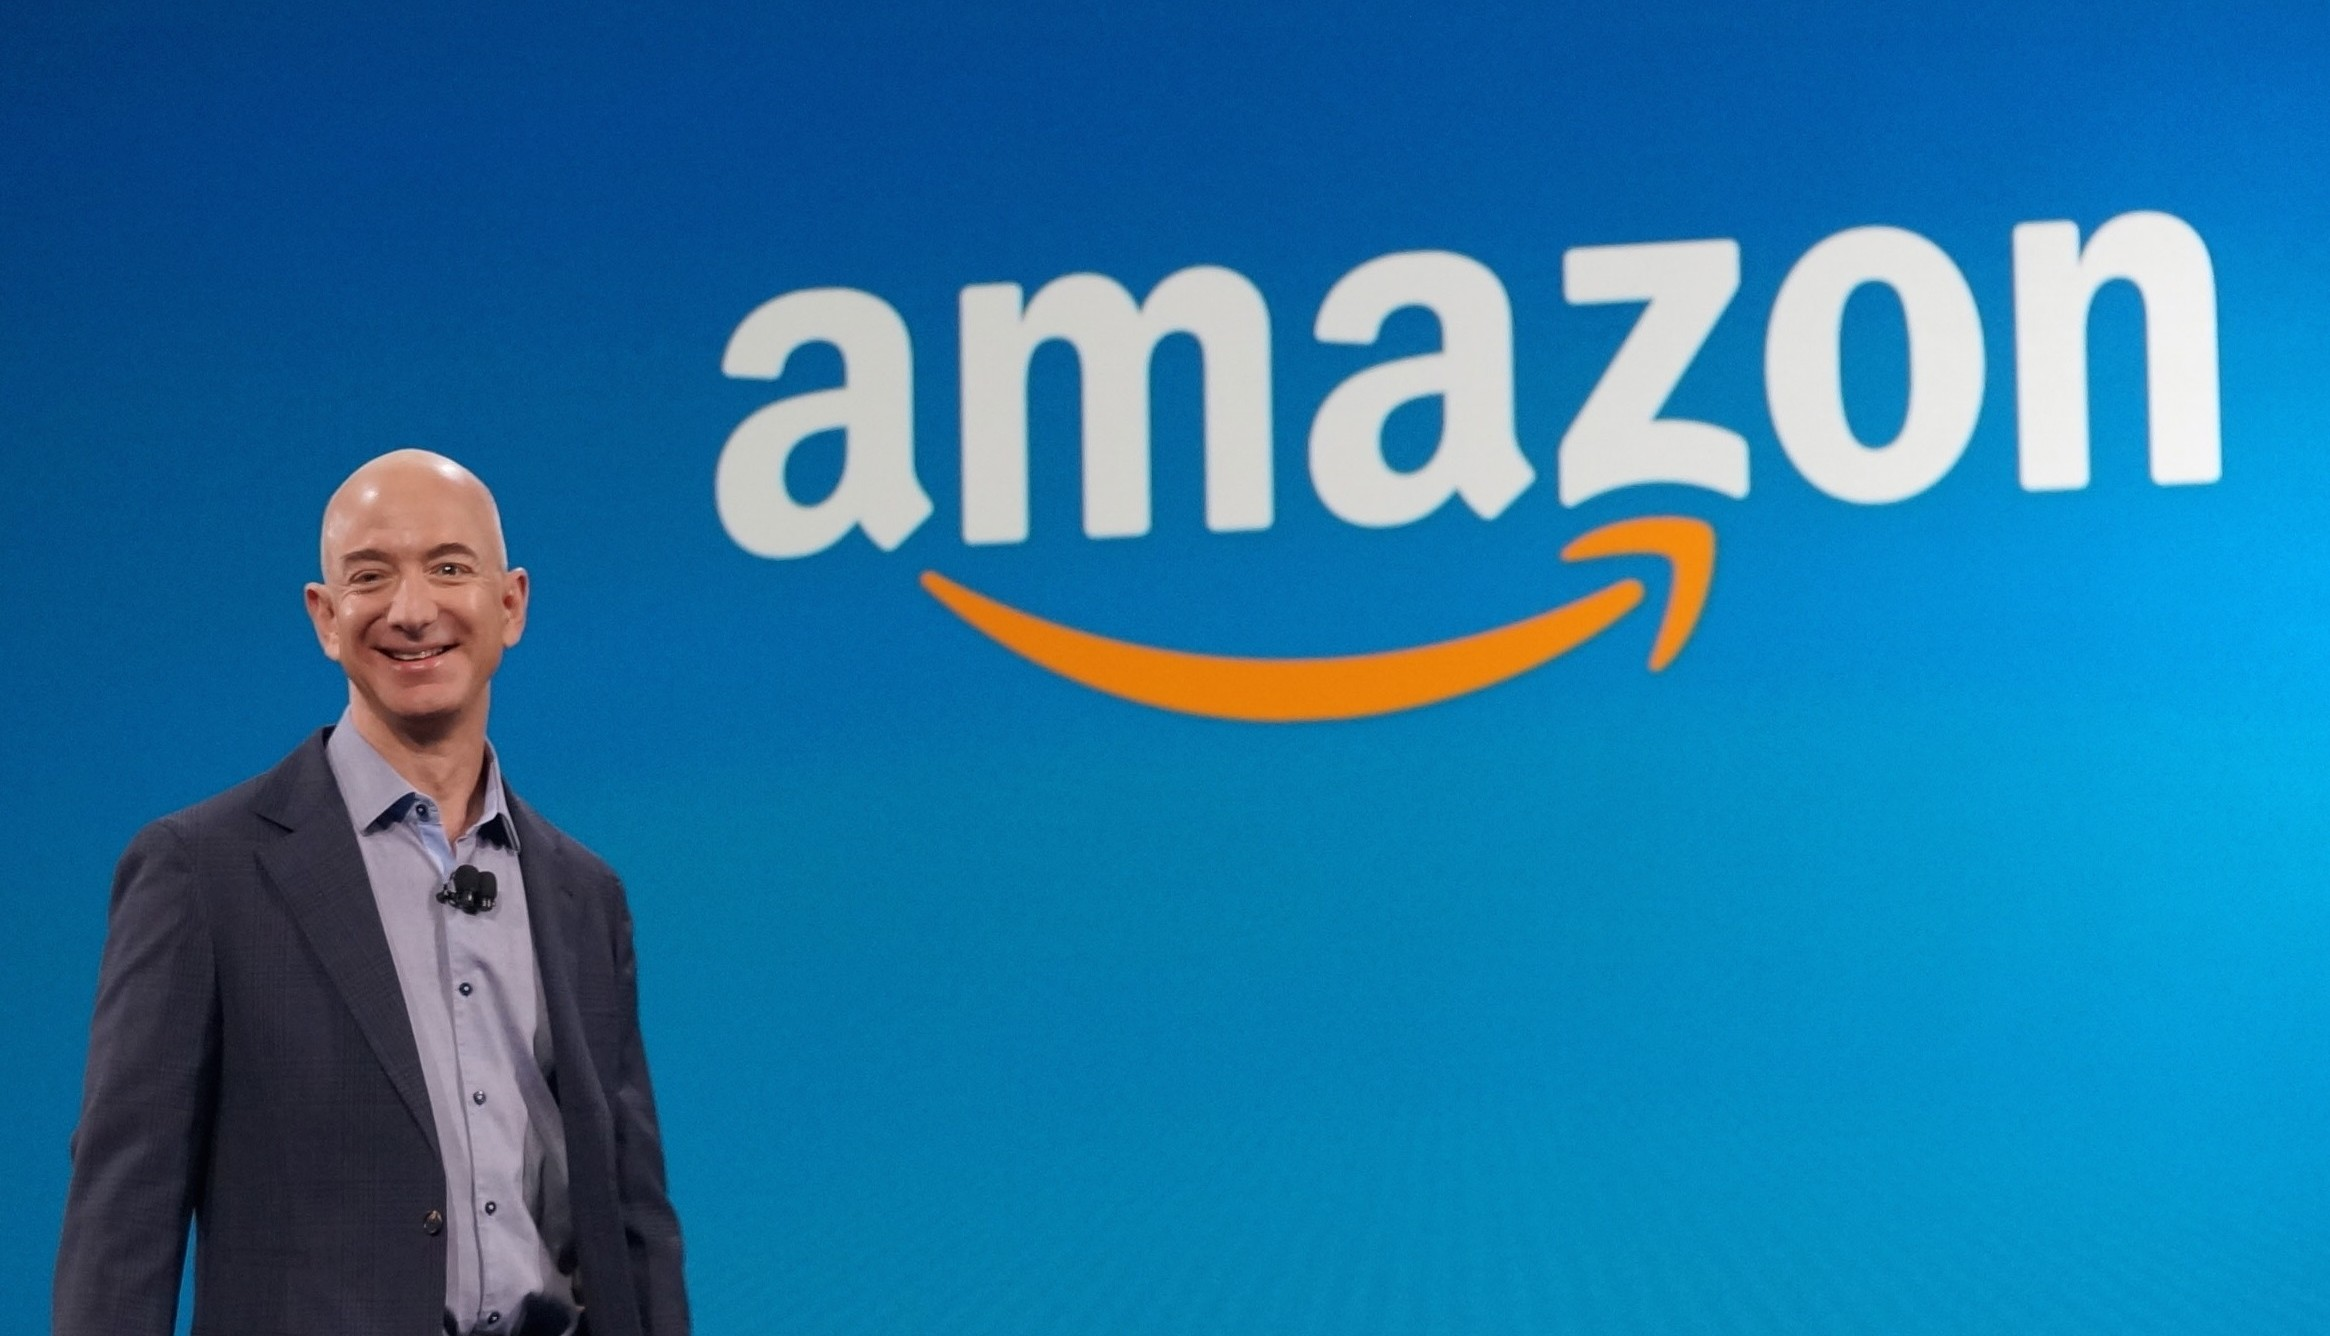 Amazon net income, revenue increase in Q4